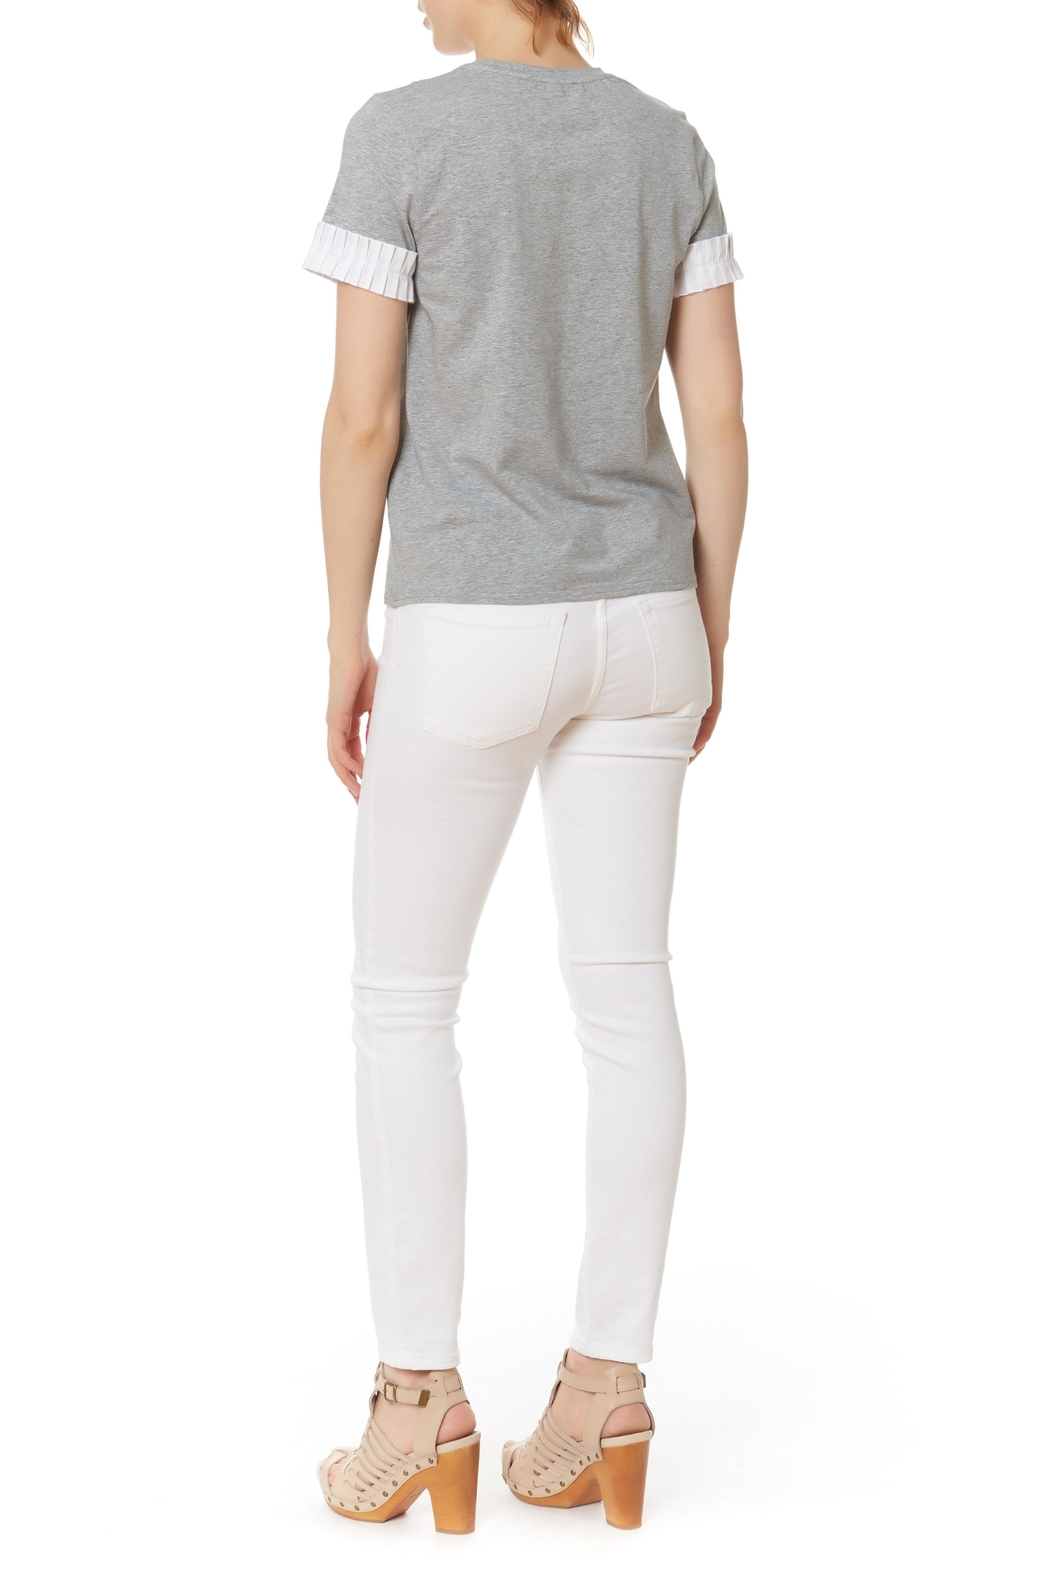 After Market Pleat Cuff Top - Front Full Image